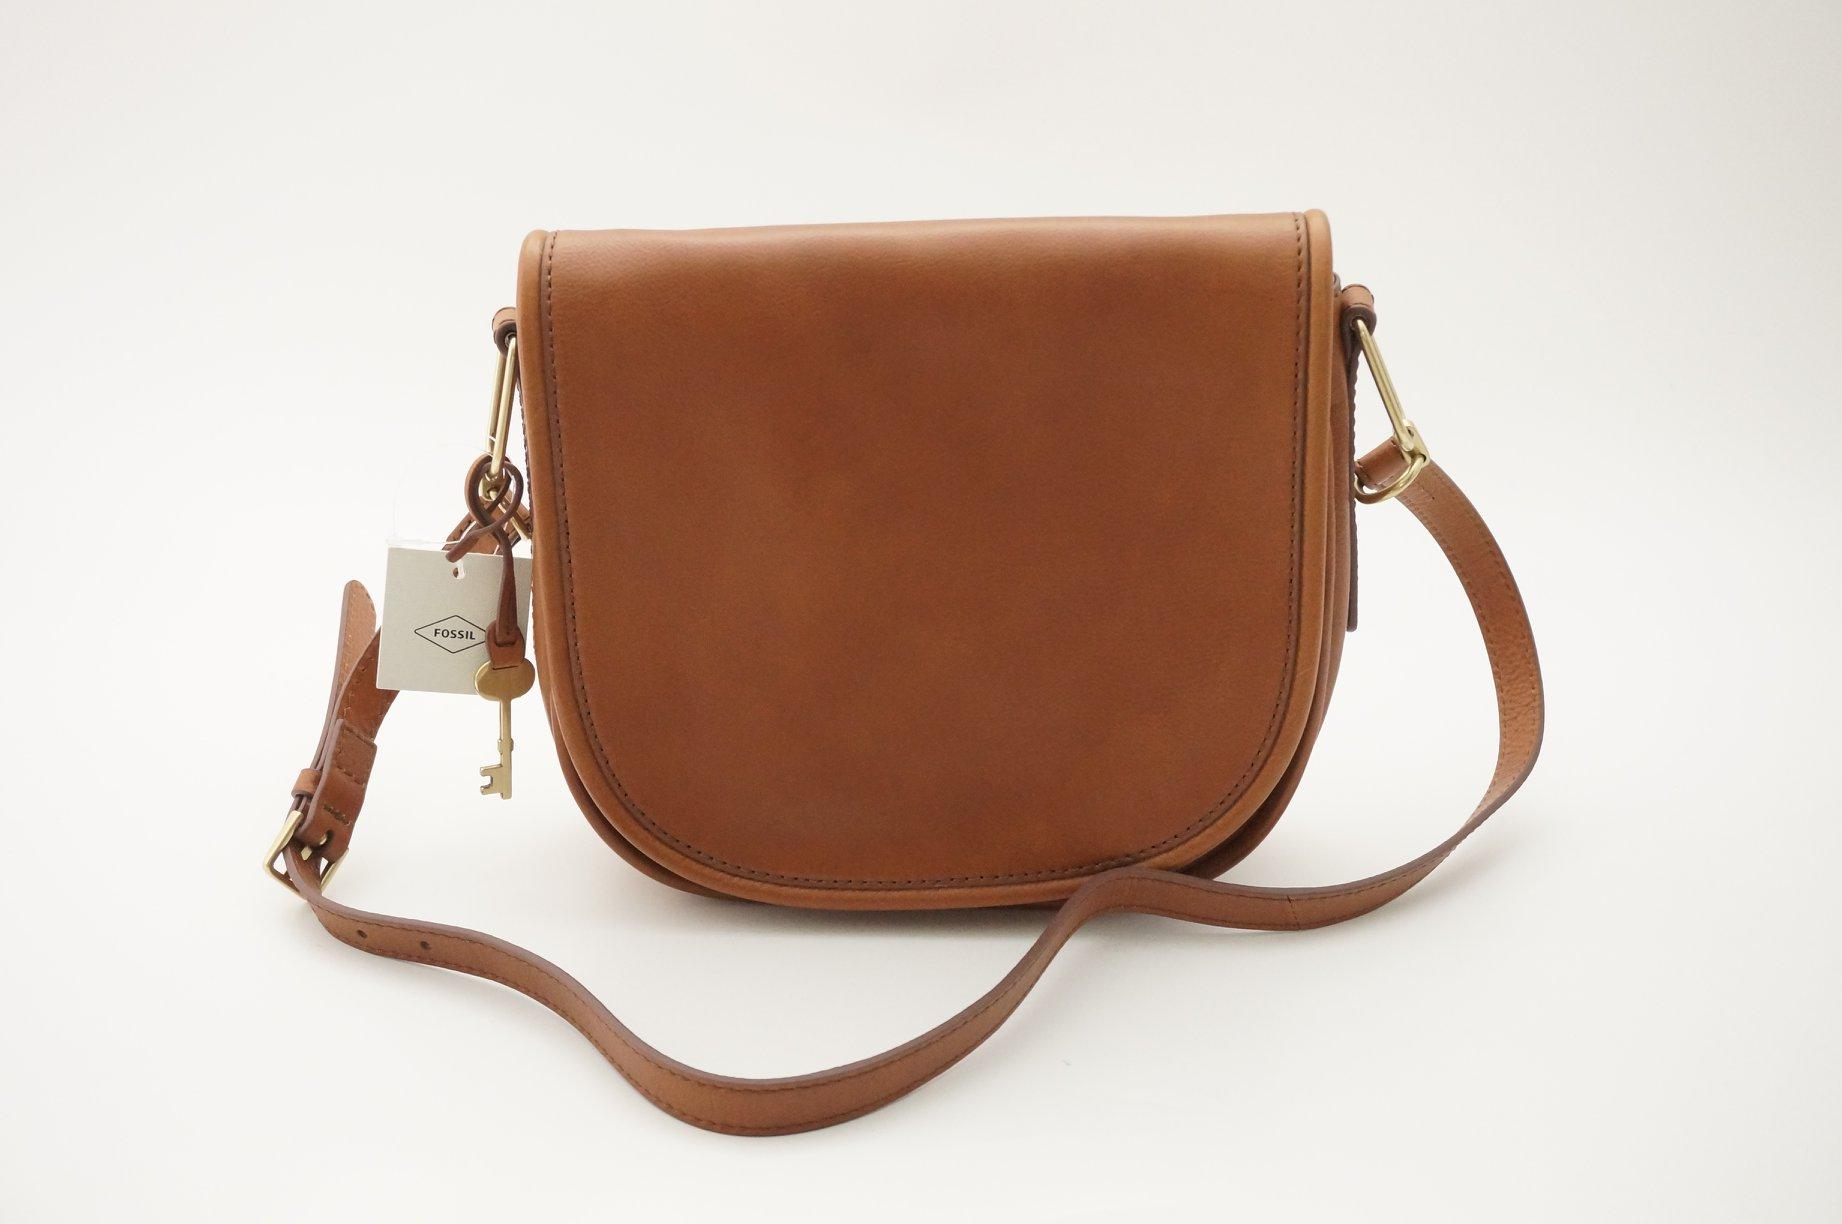 Buy Sell Cheapest Fossil Keely Selempang Best Quality Product Kendall Crossbody Navy Rumi Large Saddle